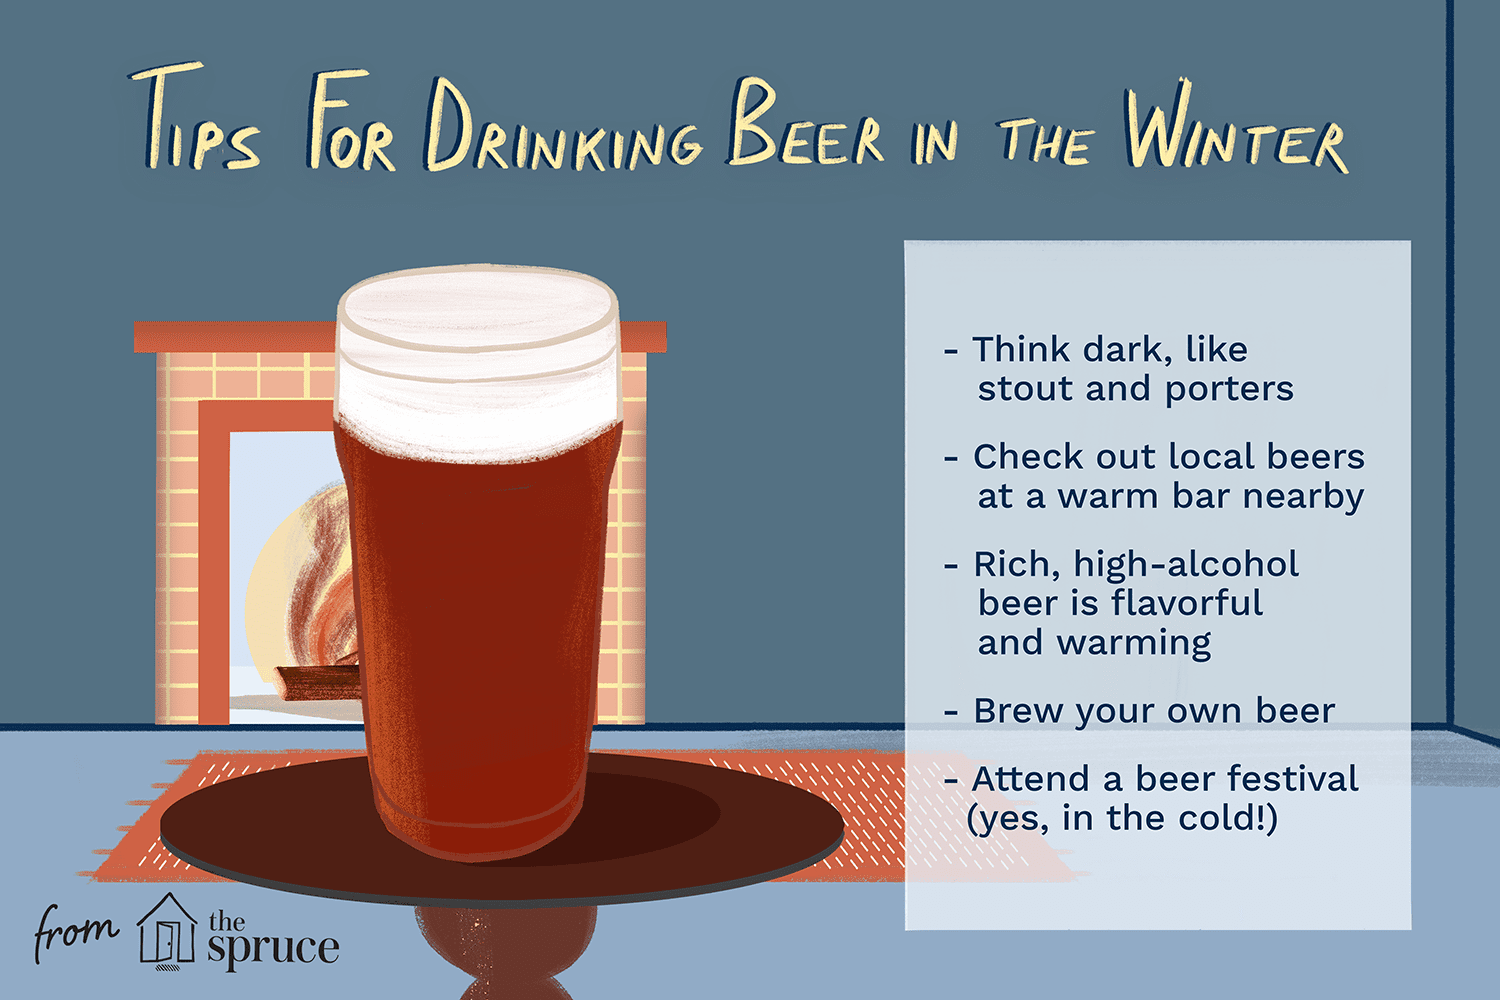 tips for drinking beer in the winter